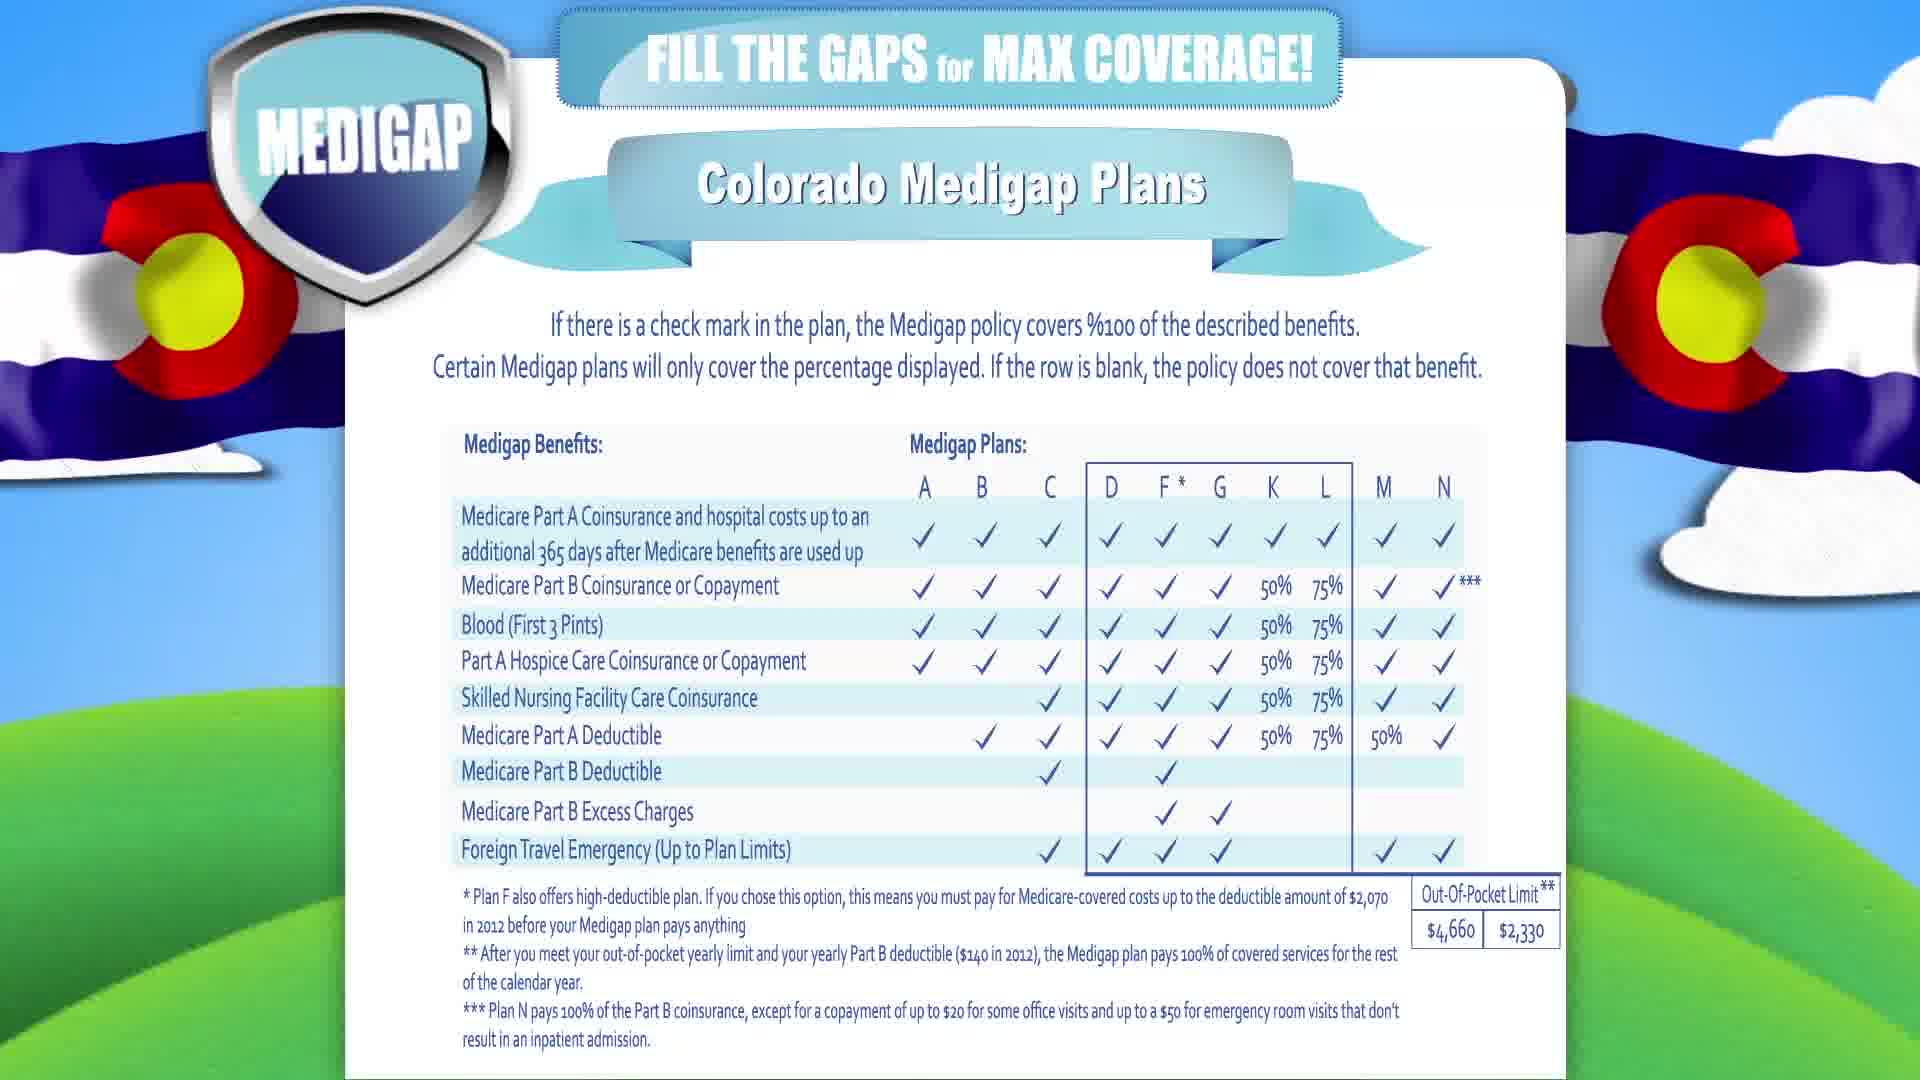 Medicare in Colorado